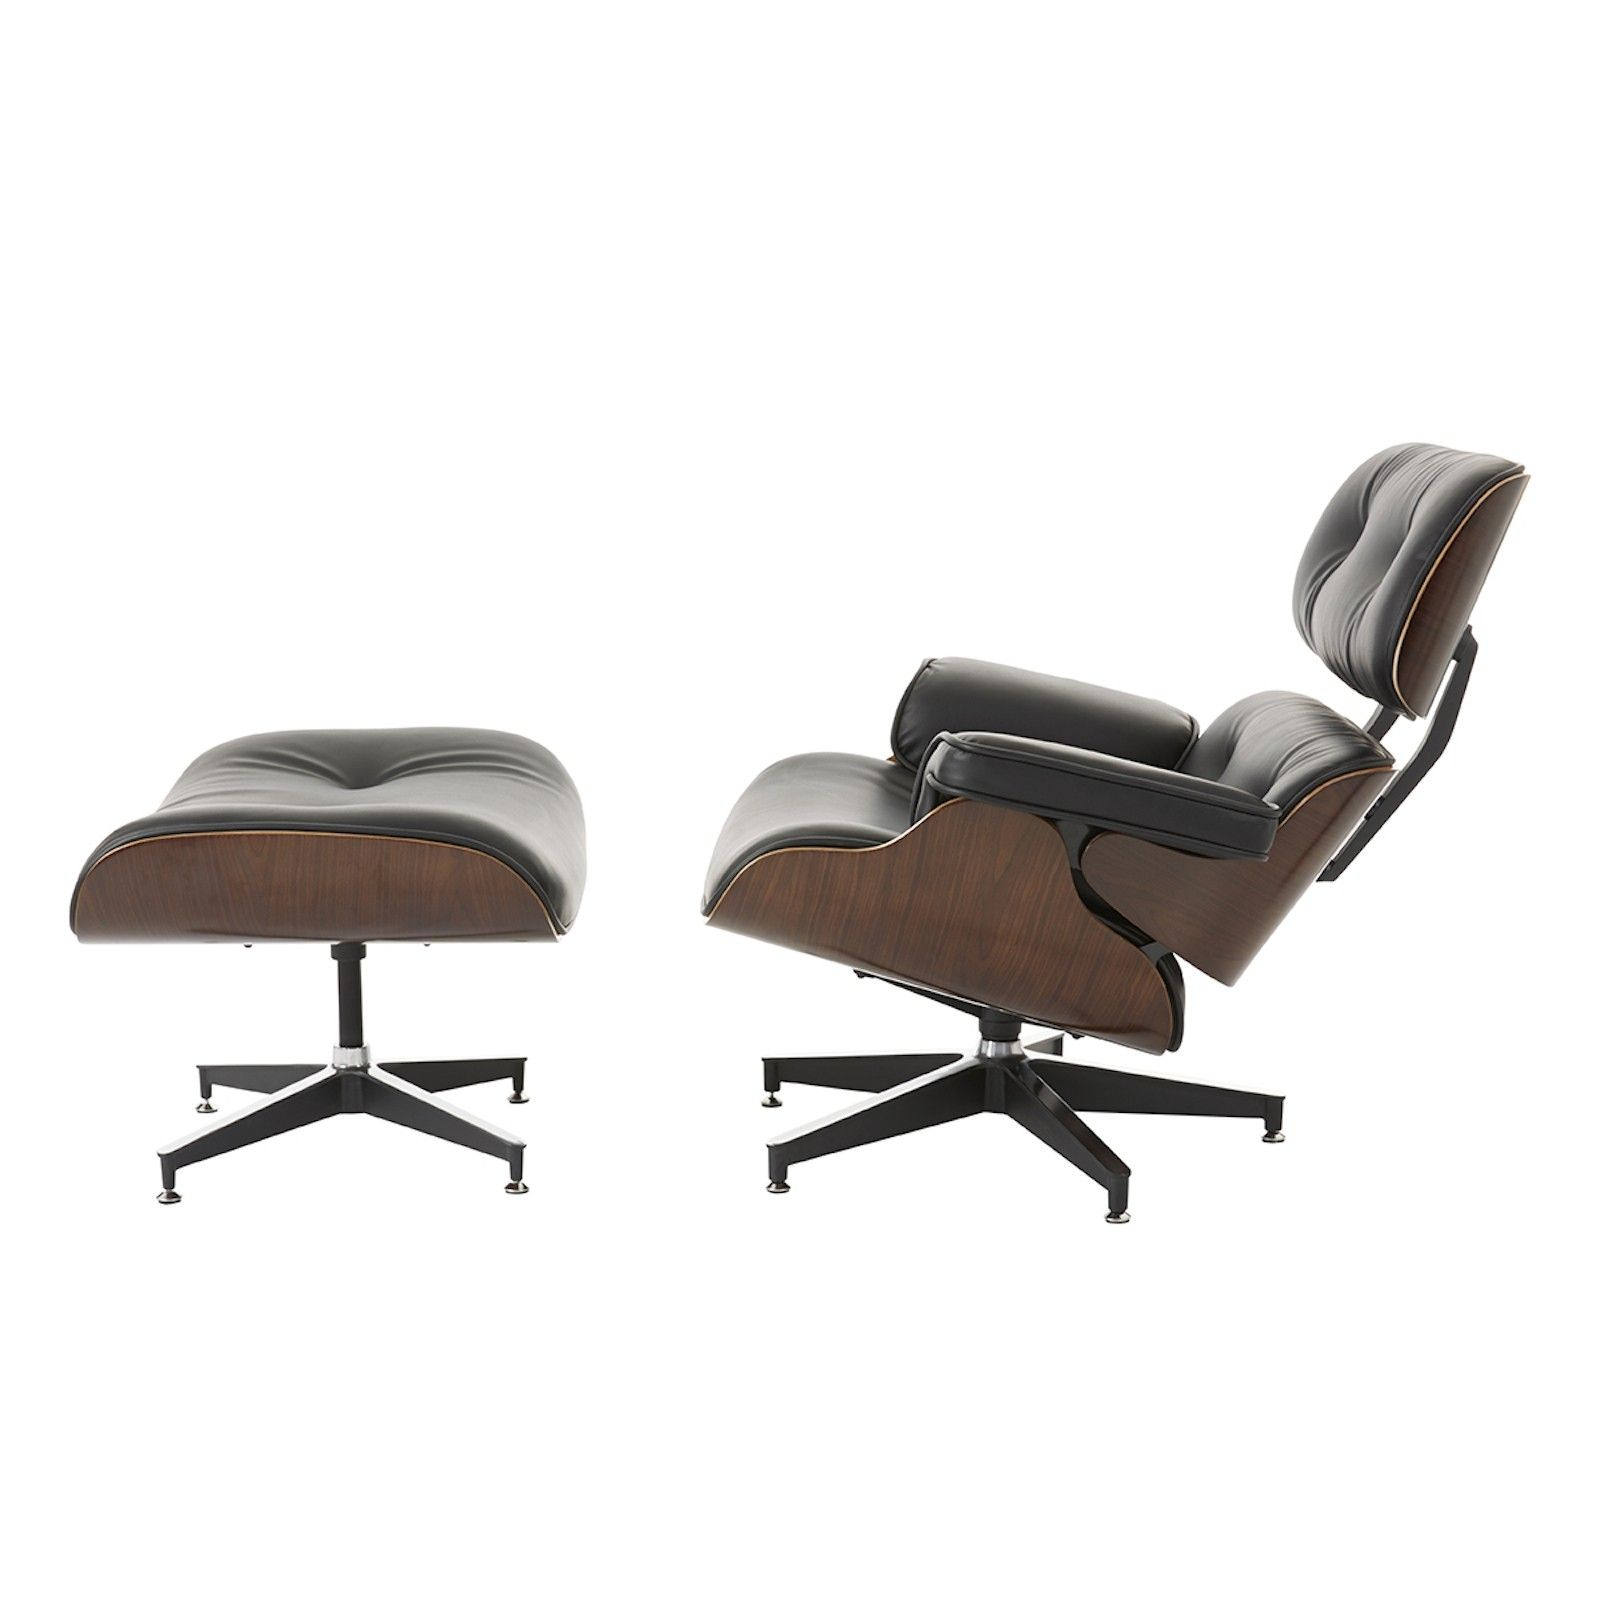 Replica Eames Lounge Chair   Standard   Chairs Nick Scali Online